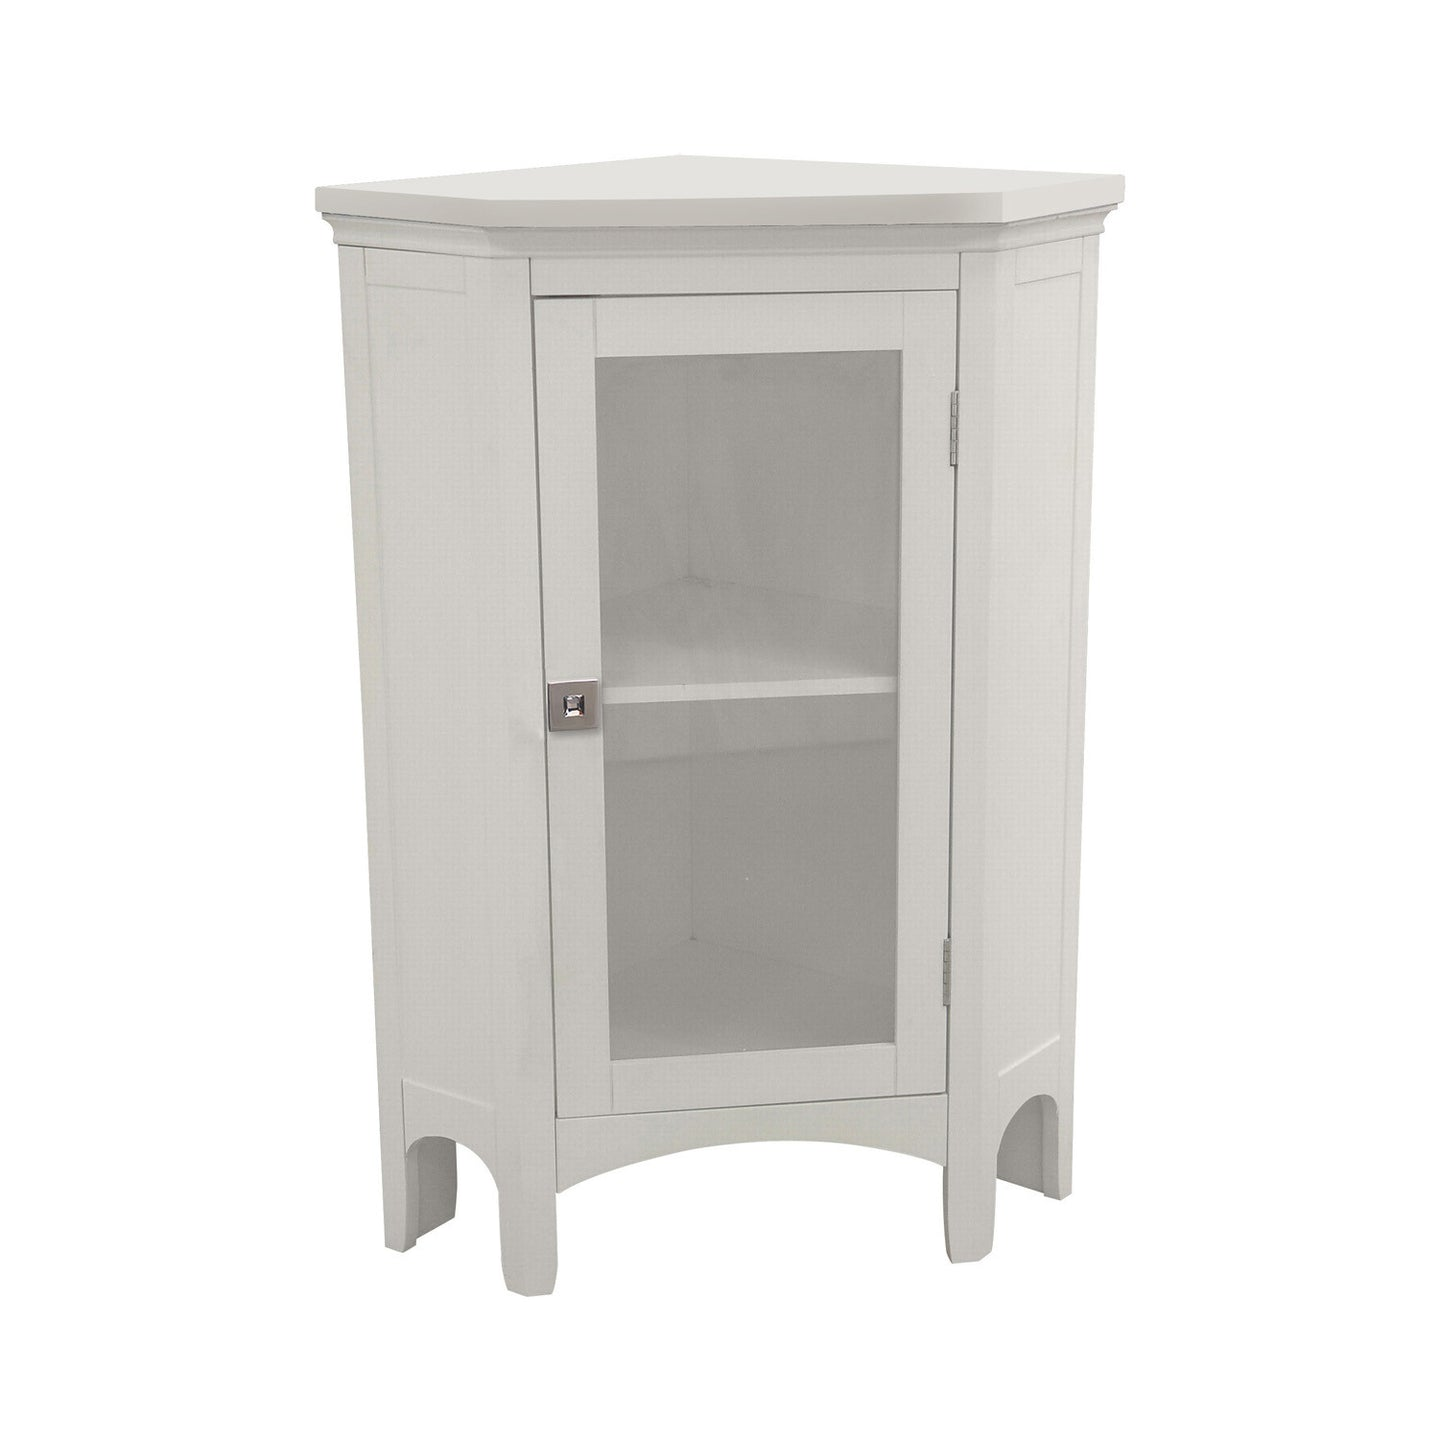 Argo Corner Floor Cabinet (White) with OOAK <strong>Asscher</strong> door knob - One of a Kind for Home